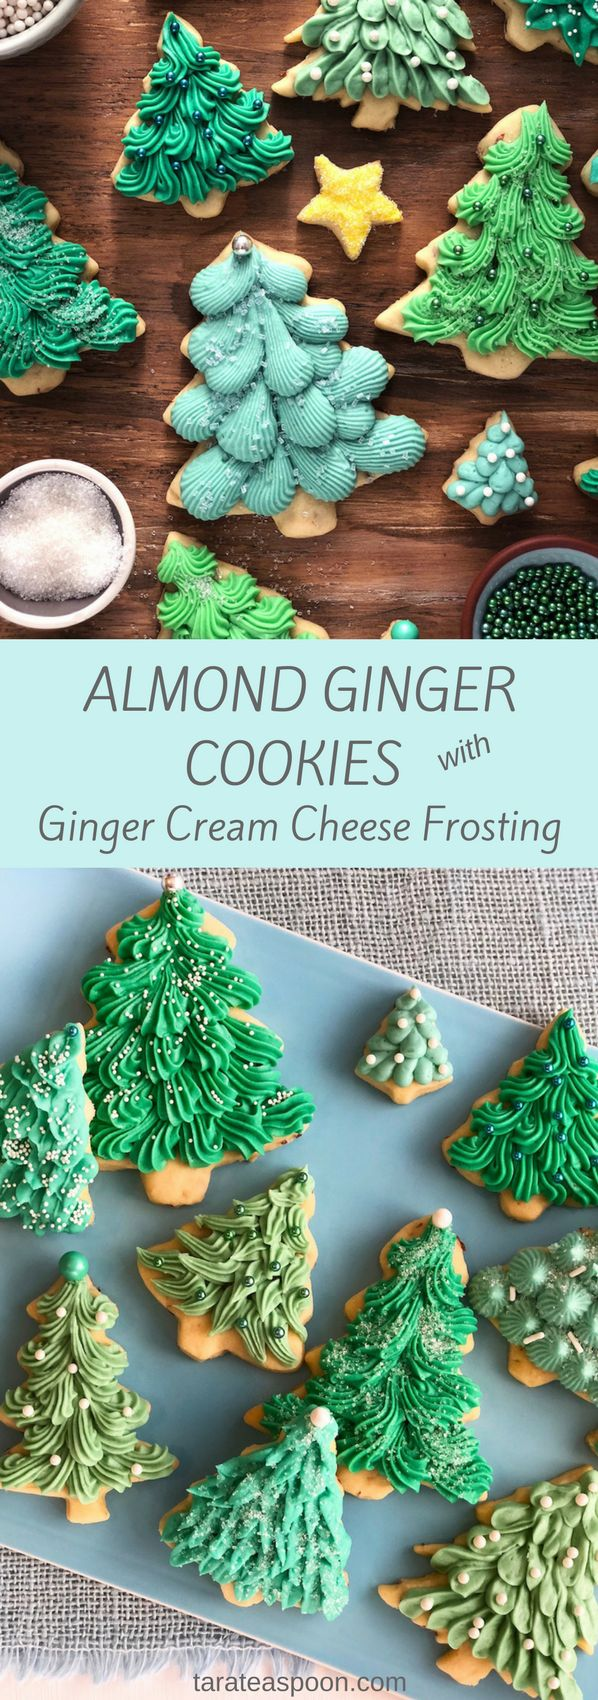 I don't think I will use almond extract, cream cheese or ginger... but the are adorable and would be delicious with a regular sugar cookie and buttercream recipe.